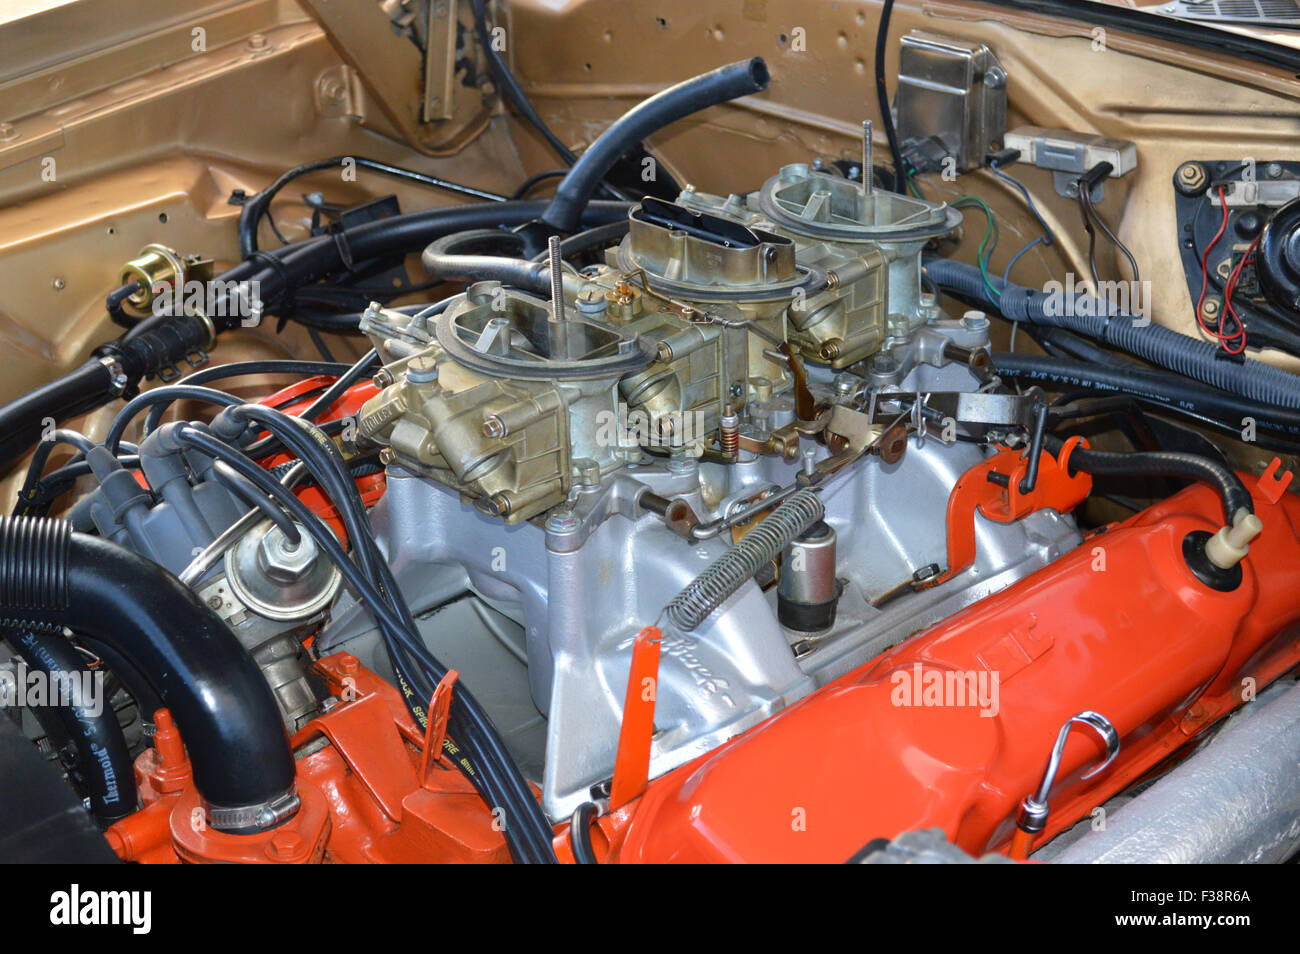 Stock Photo A Dodge 440 Six Pack Engine On Display At A Car Show 88089634 also 1970 Dodge Charger Rt additionally 22373 1970 jaguar xke as well Dodgedel69 blogspot likewise 440 Six Pack. on plymouth 440 magnum engine